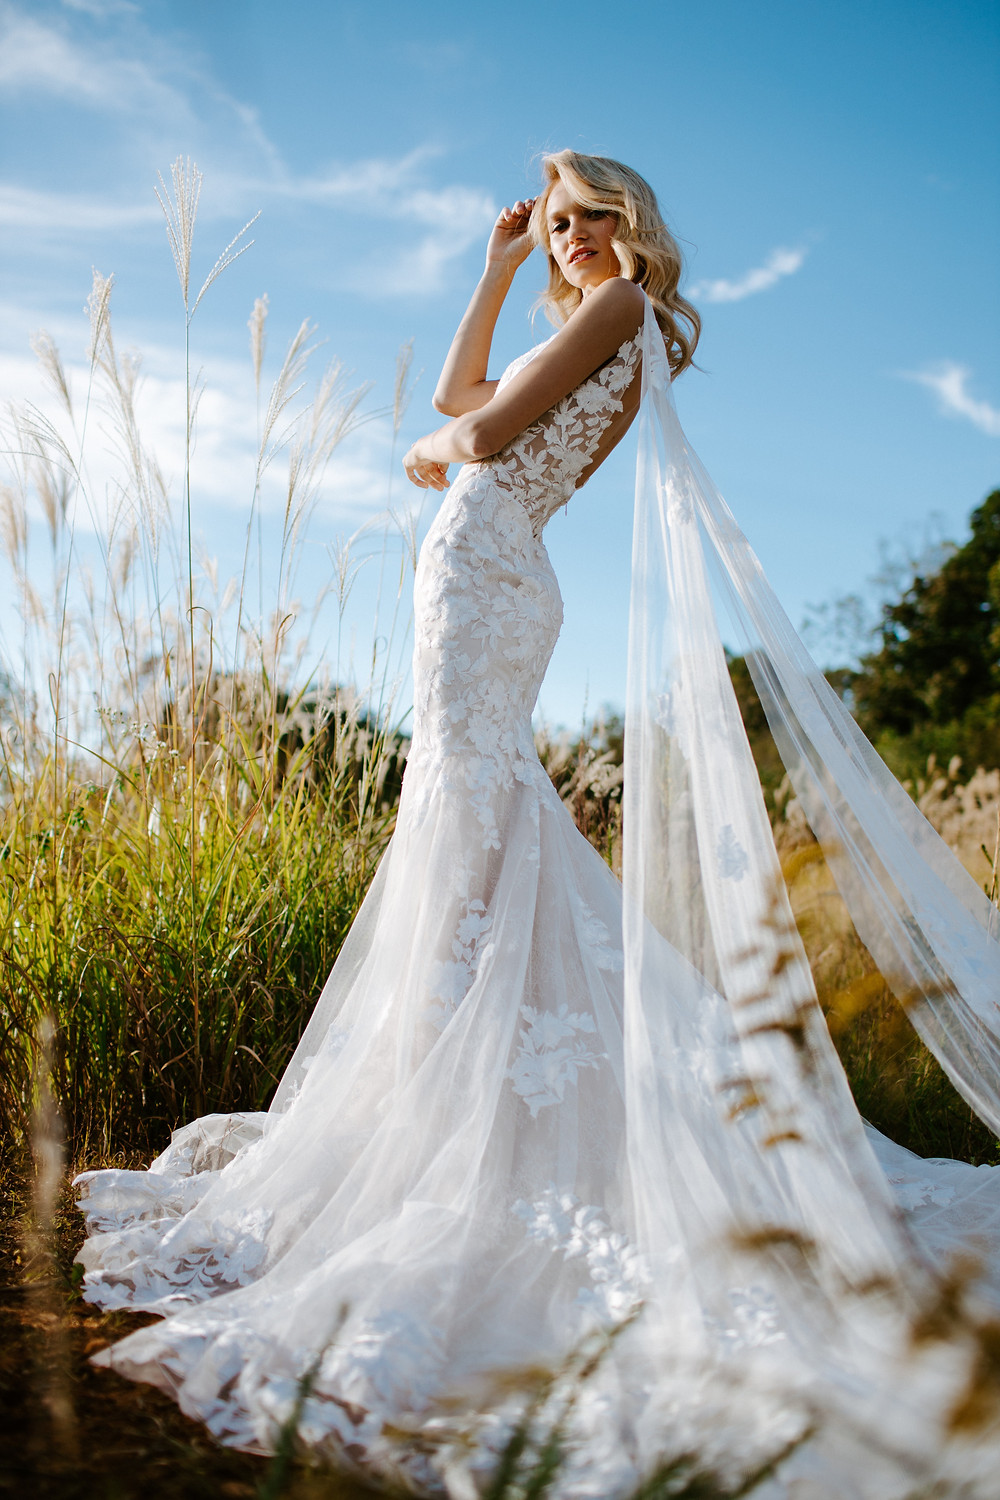 Pros and Cons of Renting Your Wedding Dress